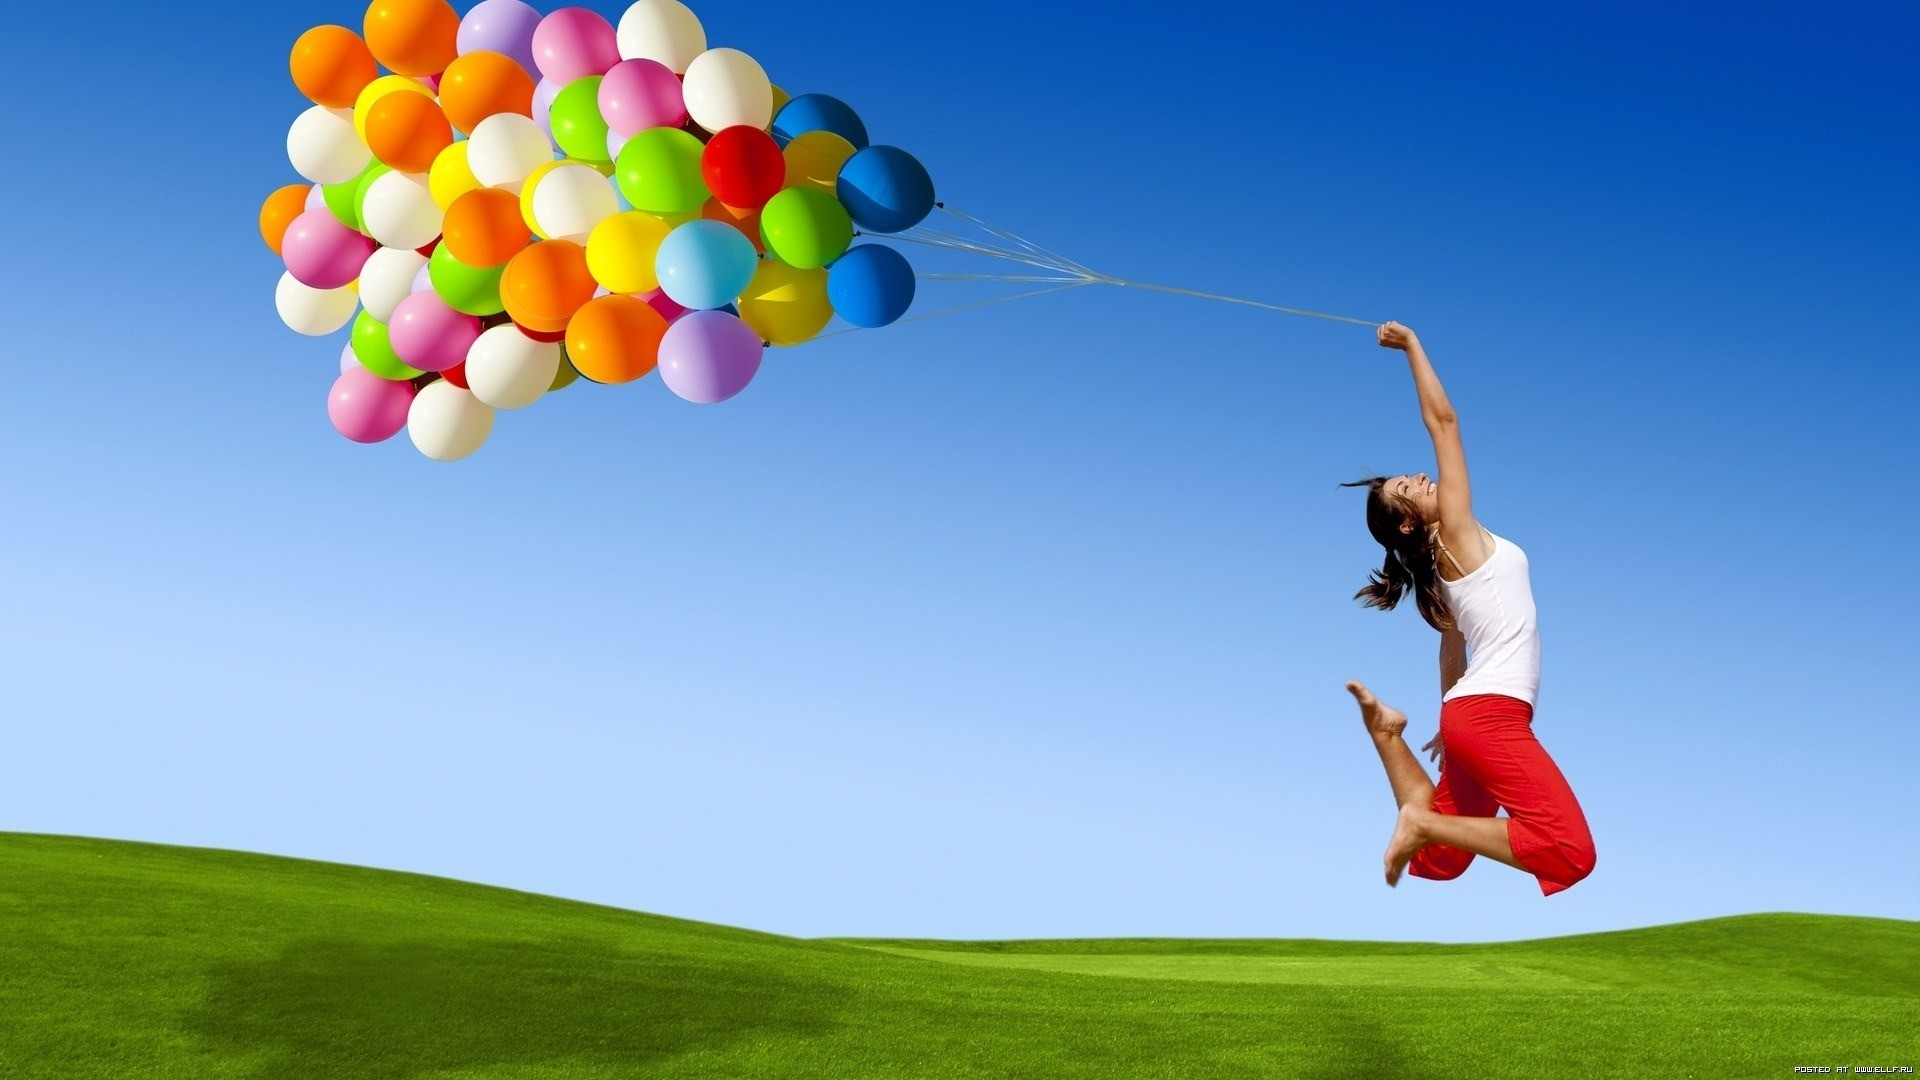 woman jumping Balloons arms